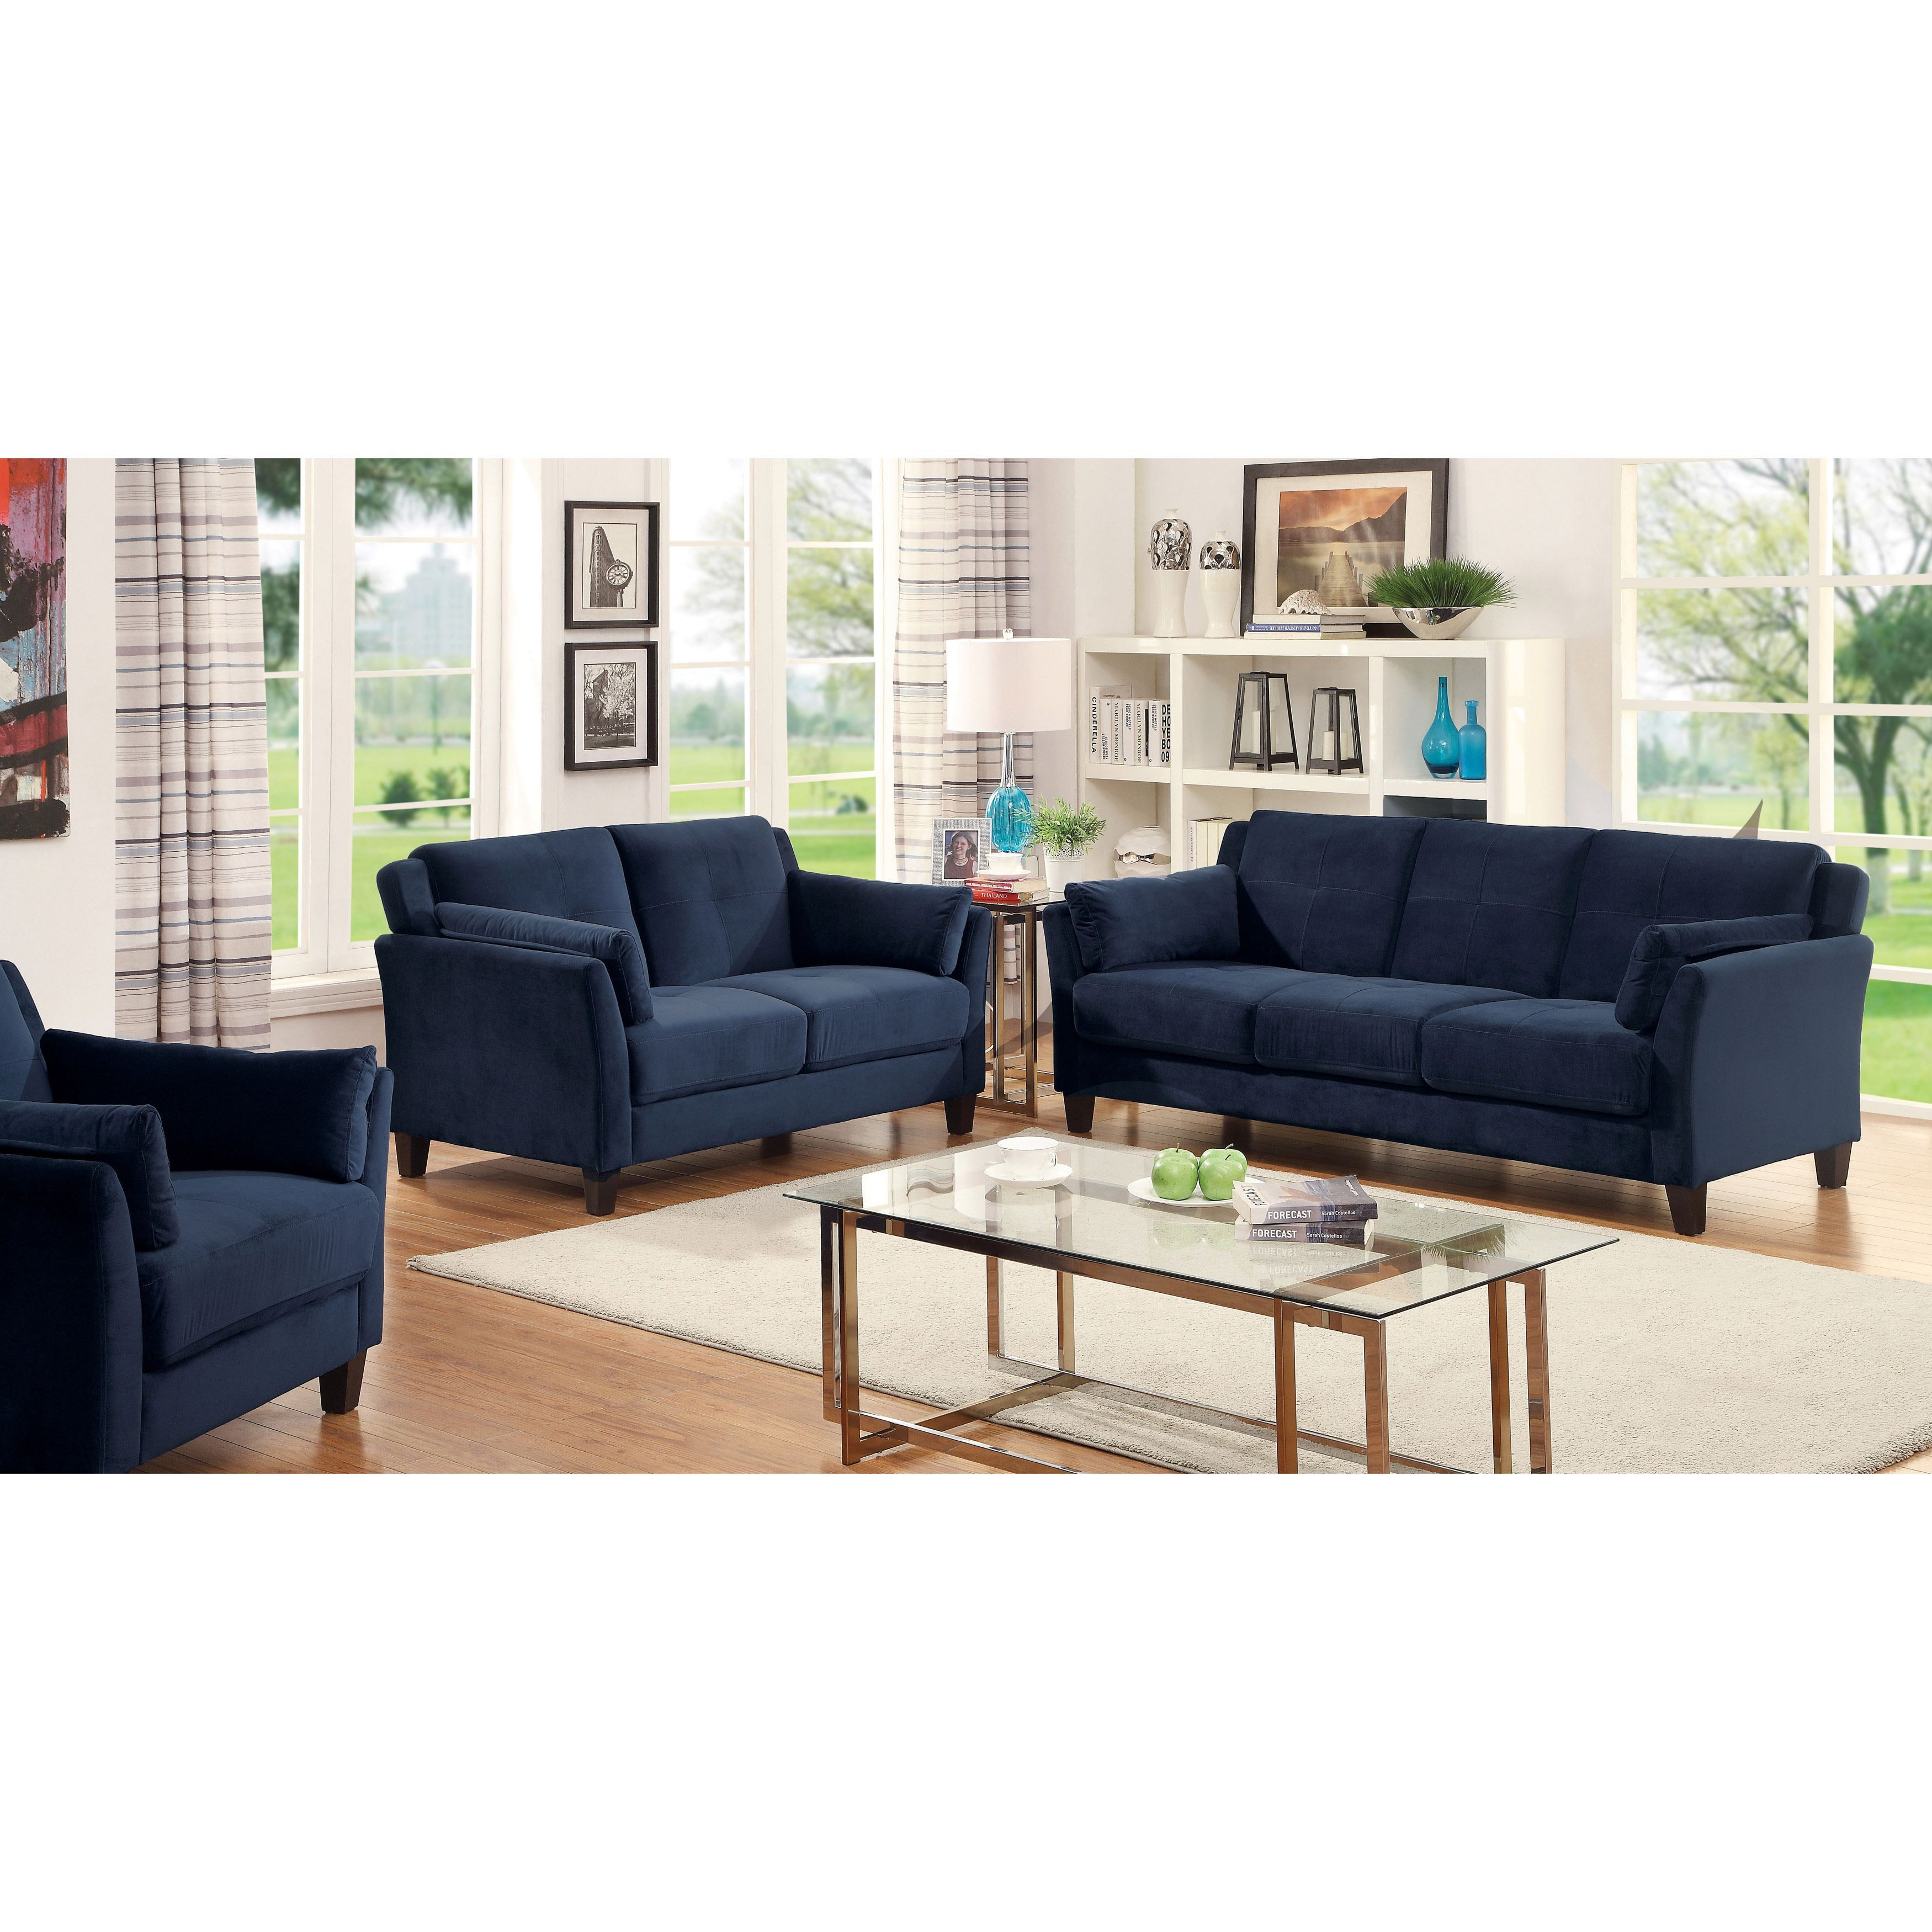 Furniture Of America Pierson Contemporary 3 Piece Flannelette Sofa Set (Navy),